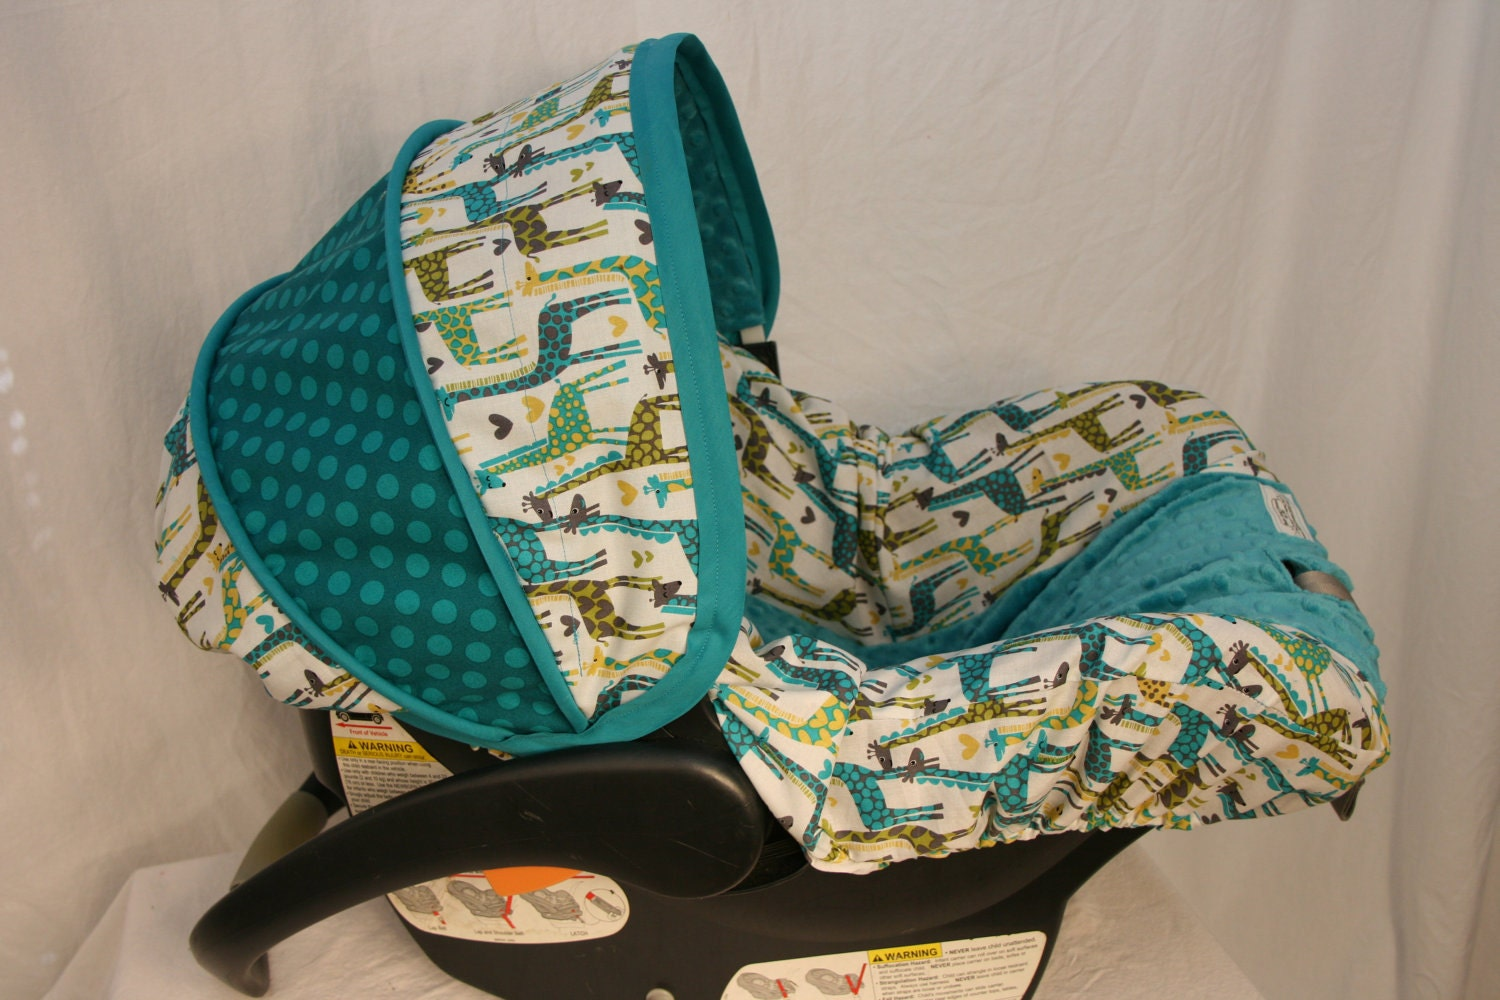 Giraffe Infant Car Seat Covers